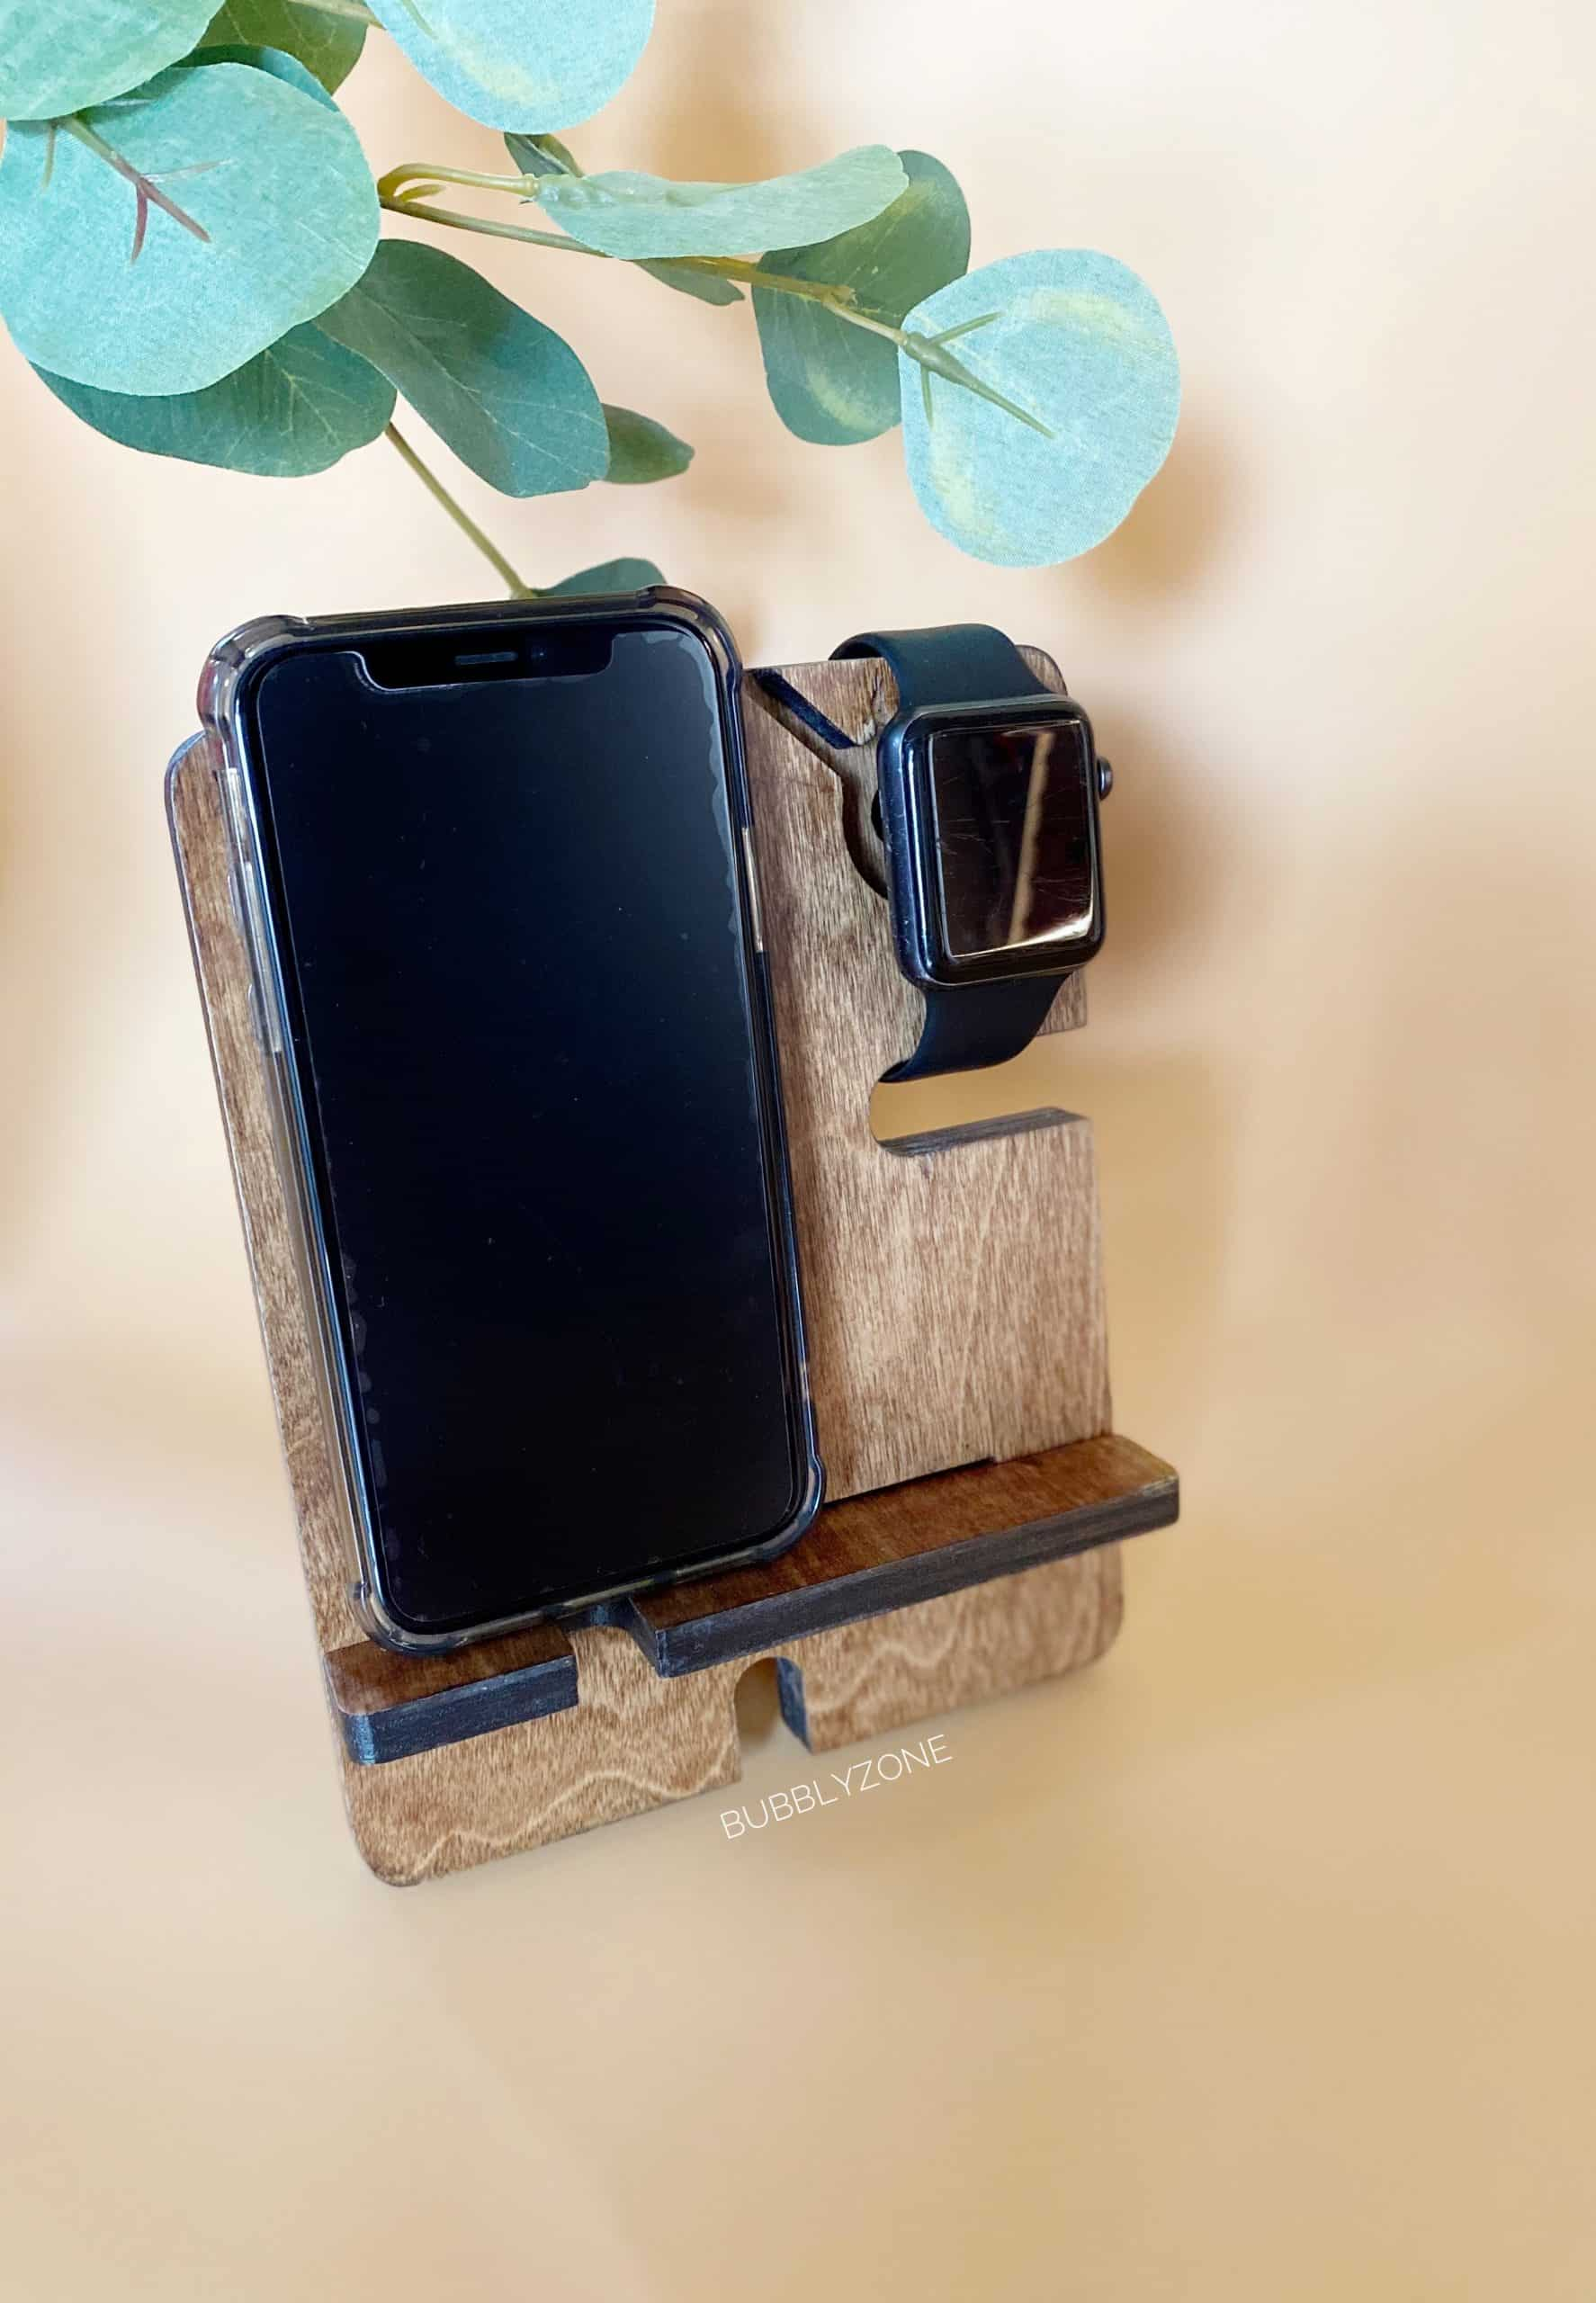 Simple Phone and watch Wooden Docking Station/ Night Stand Organiser